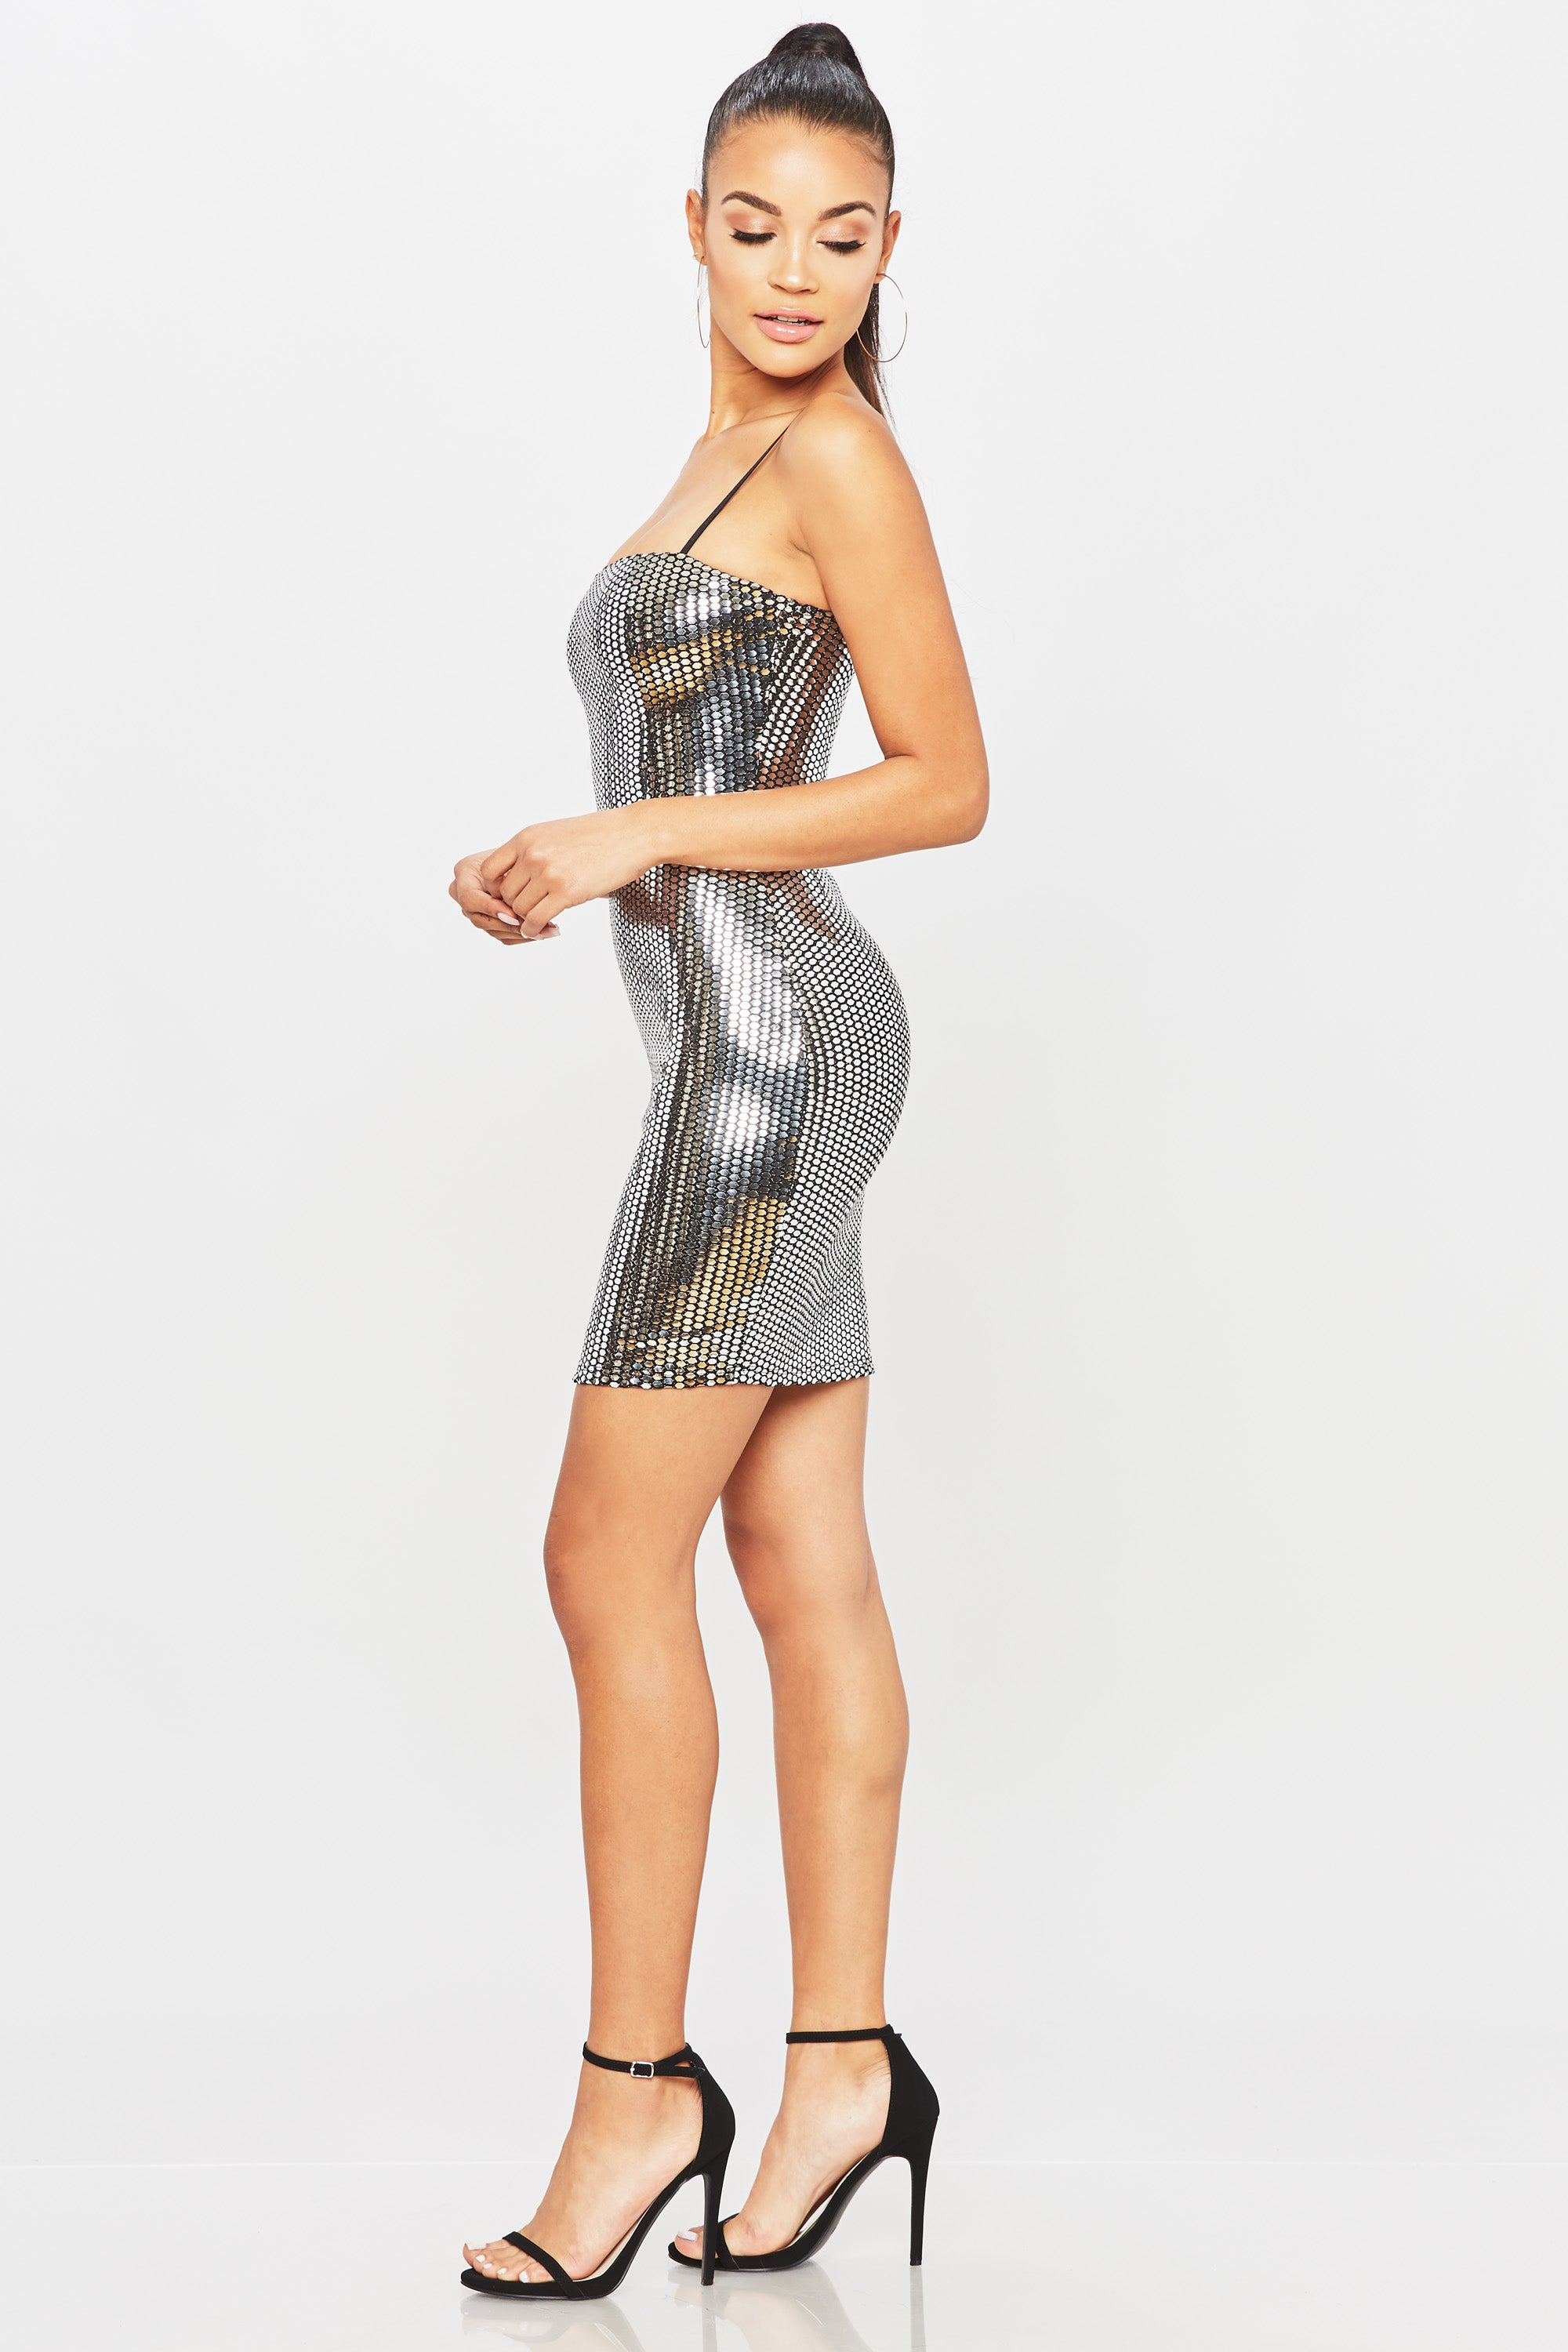 Disco Night Dress - HoneyBum